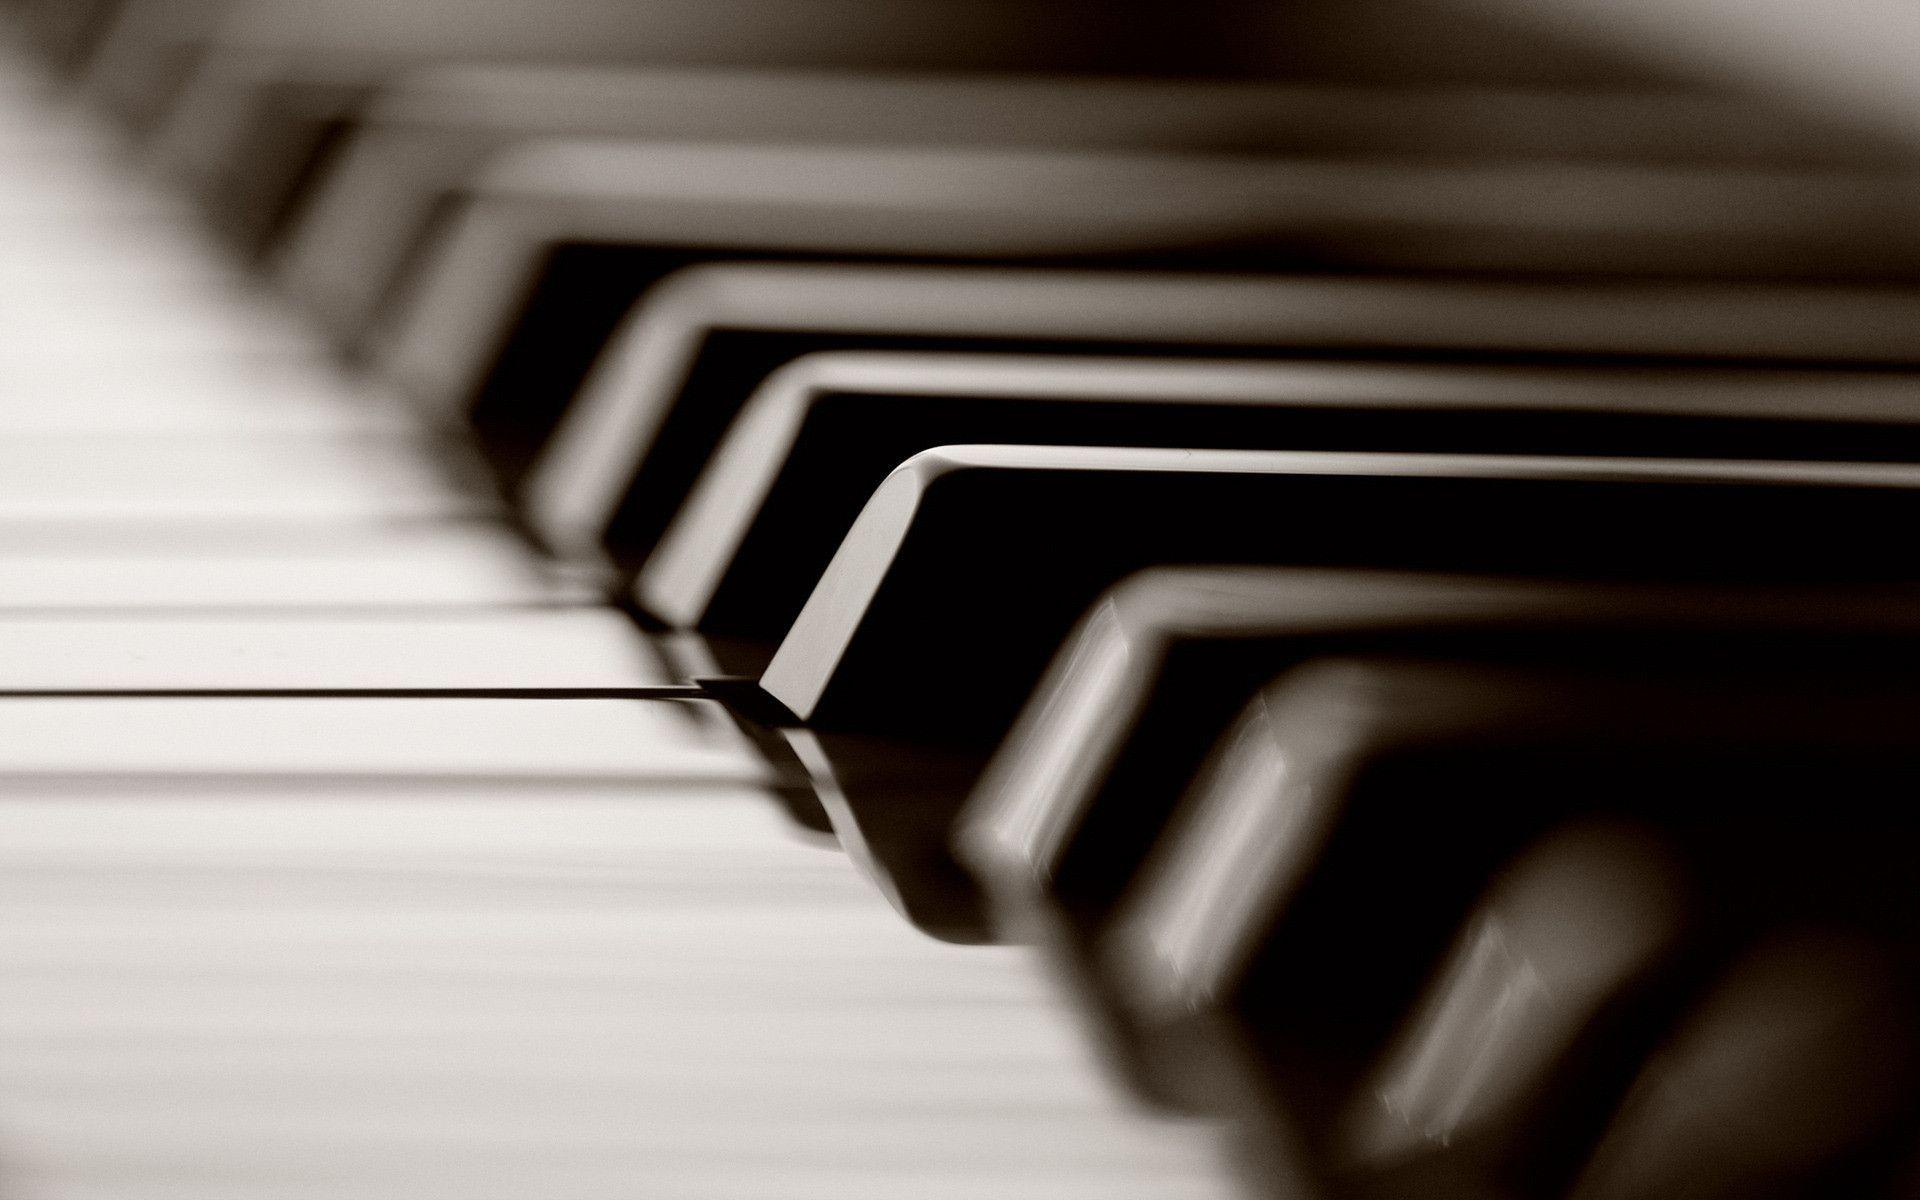 Piano Wallpapers Top Free Piano Backgrounds Wallpaperaccess